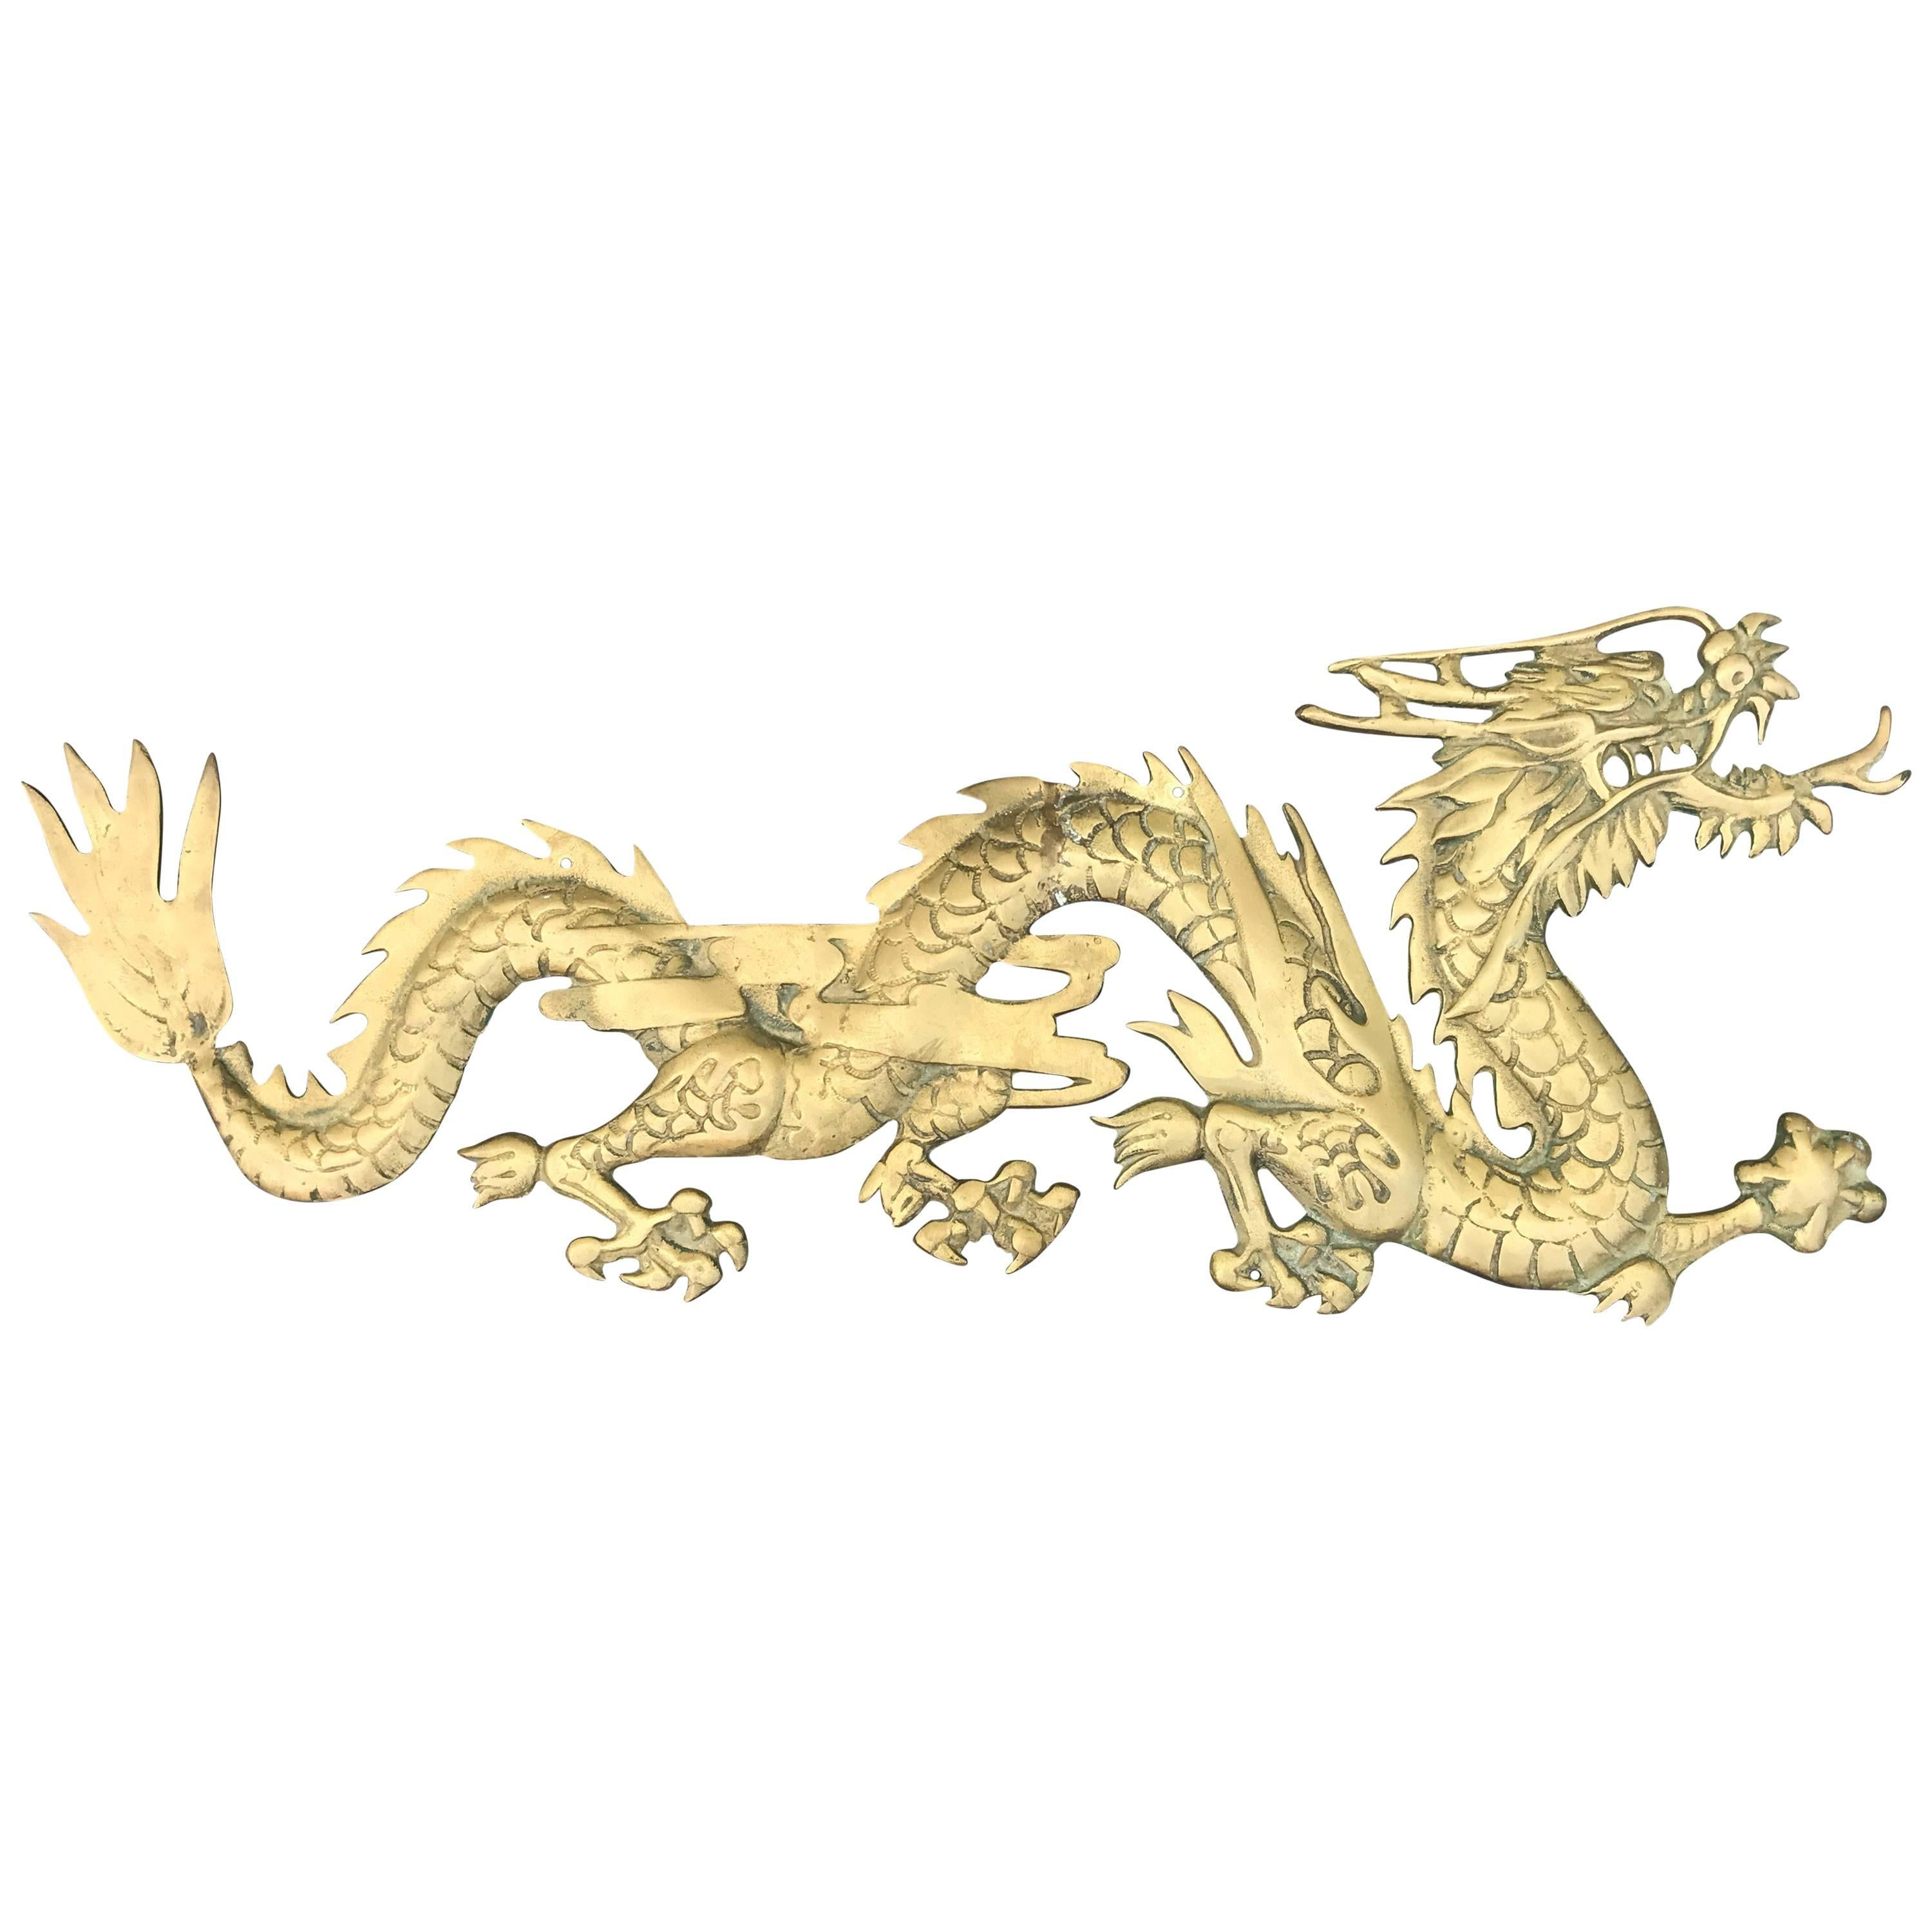 1950s Asian Brass Dragon Wall Sculpture For Sale at 1stdibs